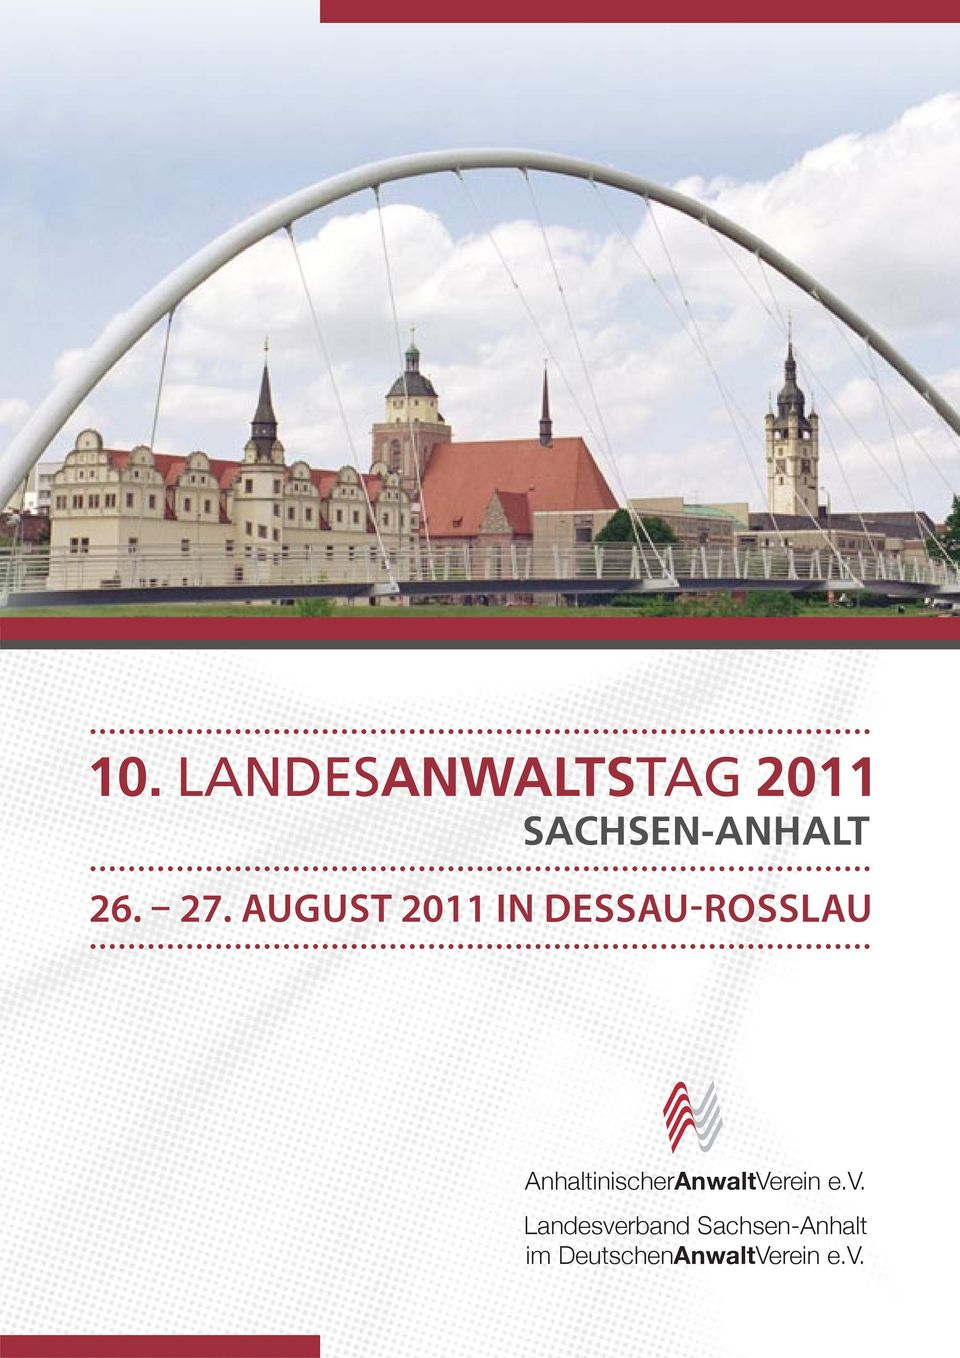 AUGUST 2011 IN DESSAU-ROSSLAU